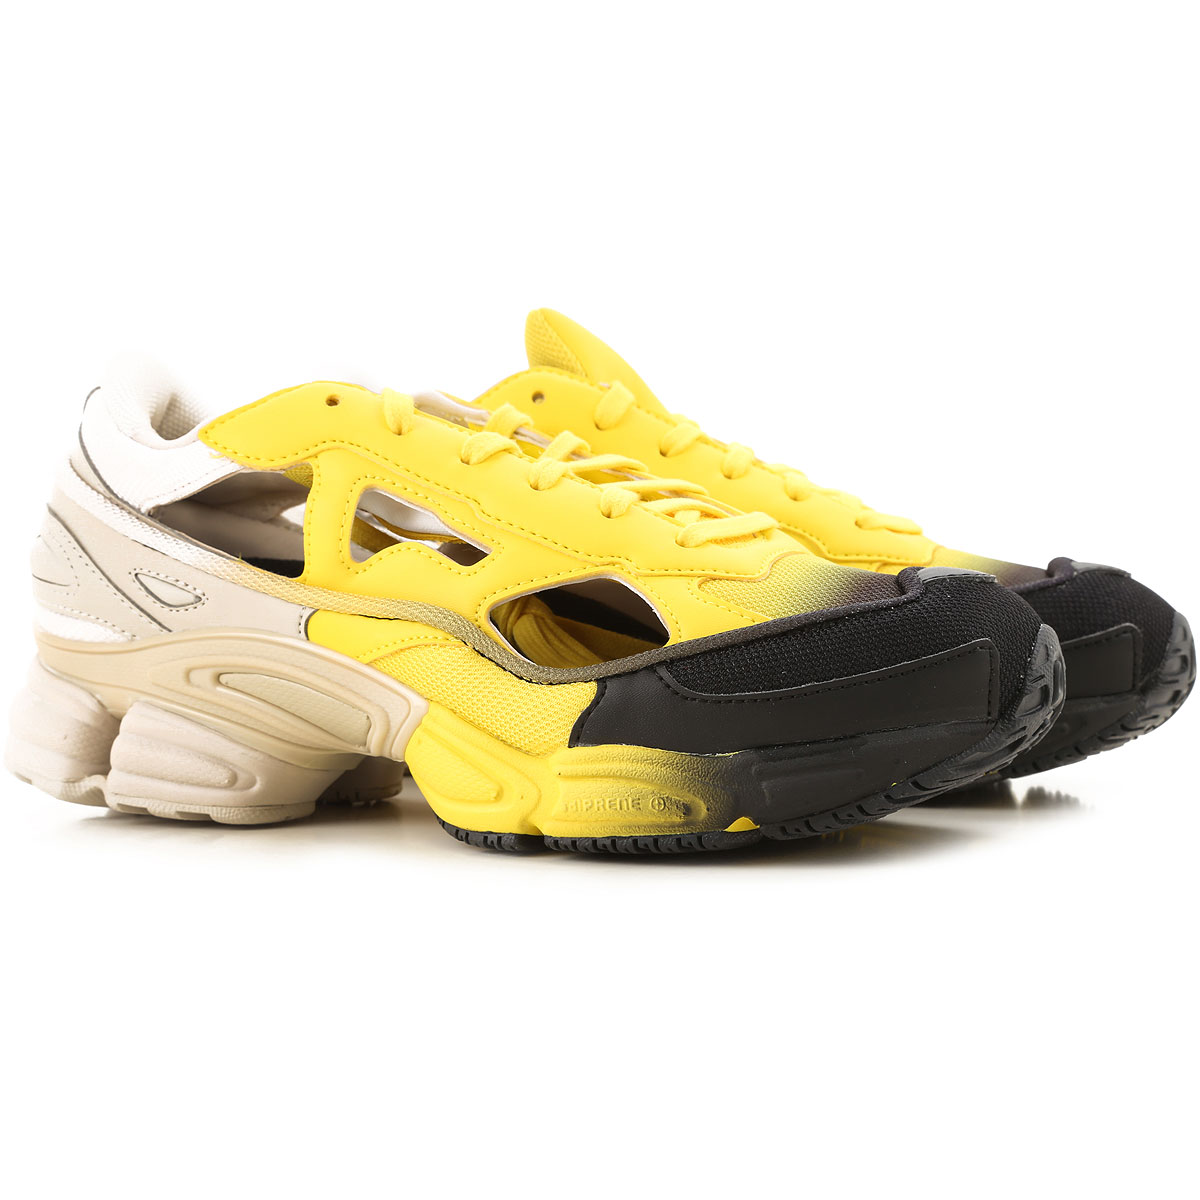 Adidas Sneakers for Men On Sale in Outlet, Yellow, Leather, 2019, US 7.5 - UK 7 - EU 40.5 US 7 - UK 6.5 - EU 40 US 6.5 - UK 6 - EU 39